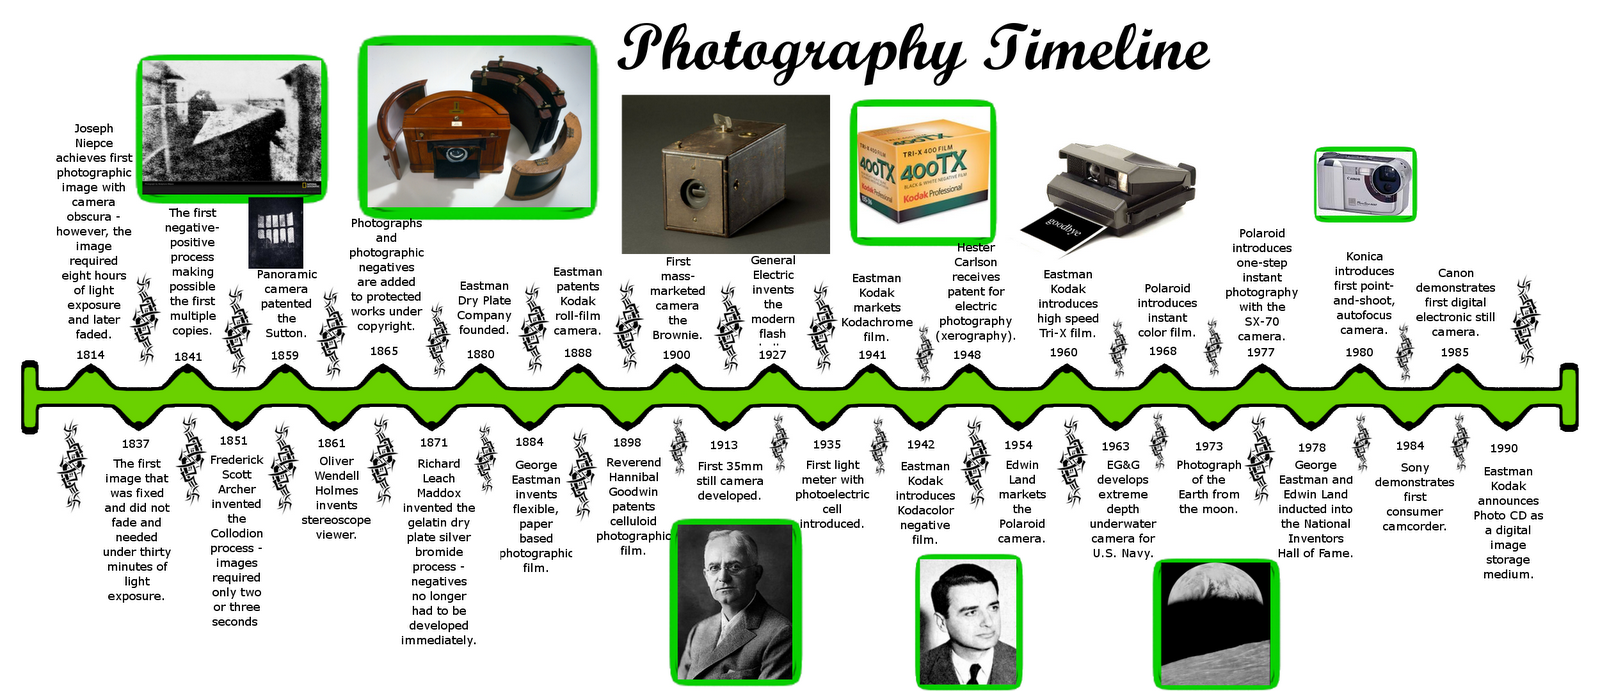 Photography Timeline And History